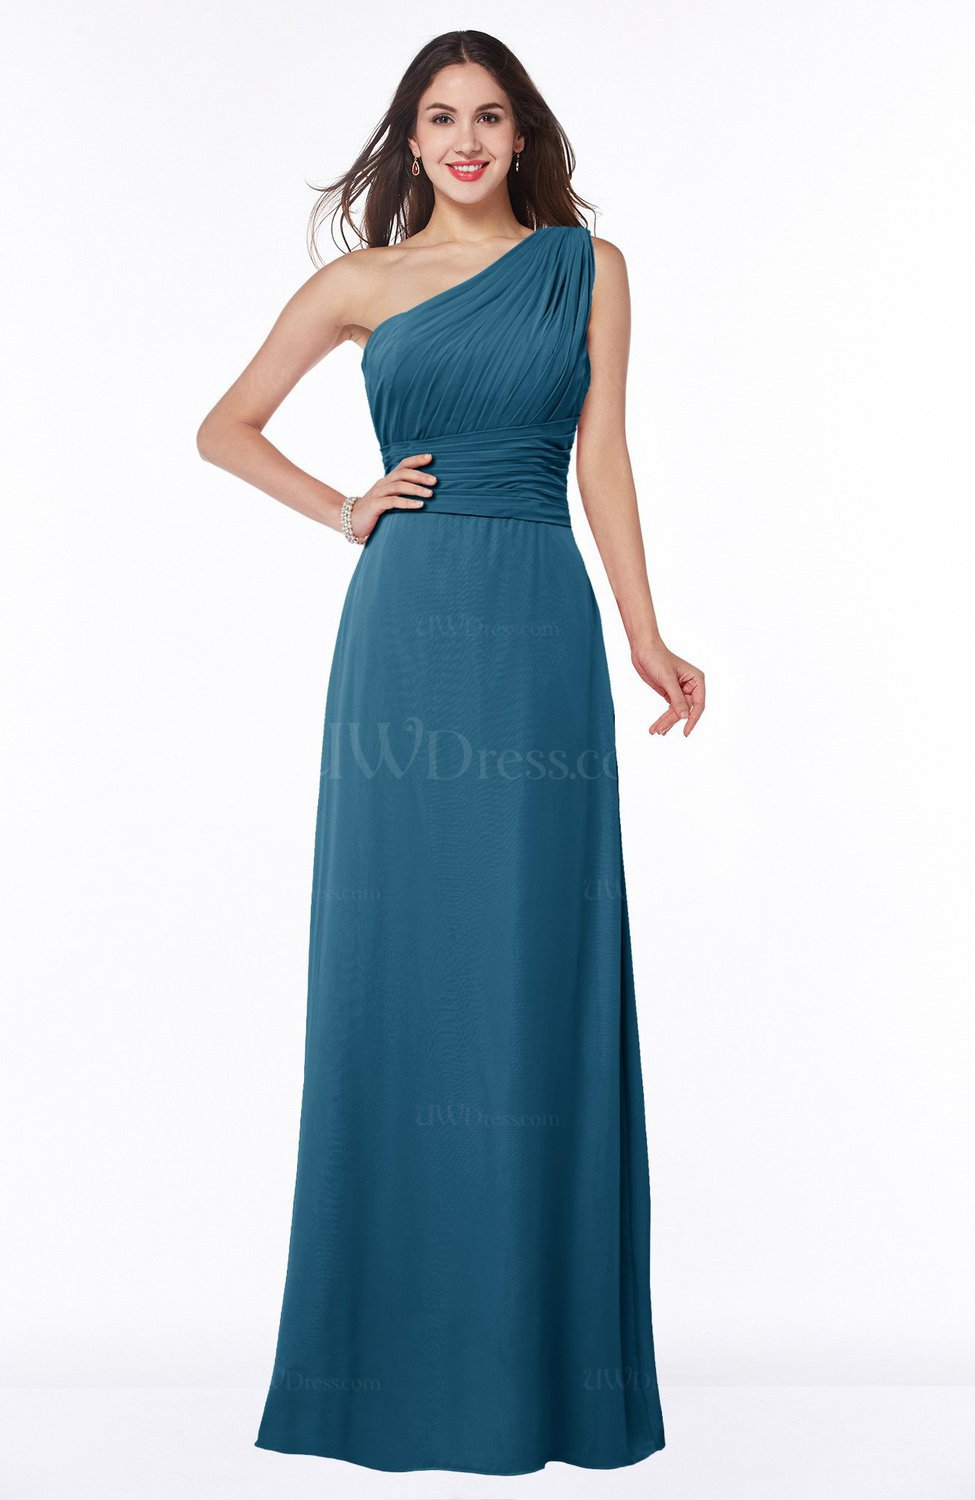 Plus size bridesmaid dresses uwdress moroccan blue elegant a line asymmetric neckline sleeveless floor length sash plus size bridesmaid dresses ombrellifo Images